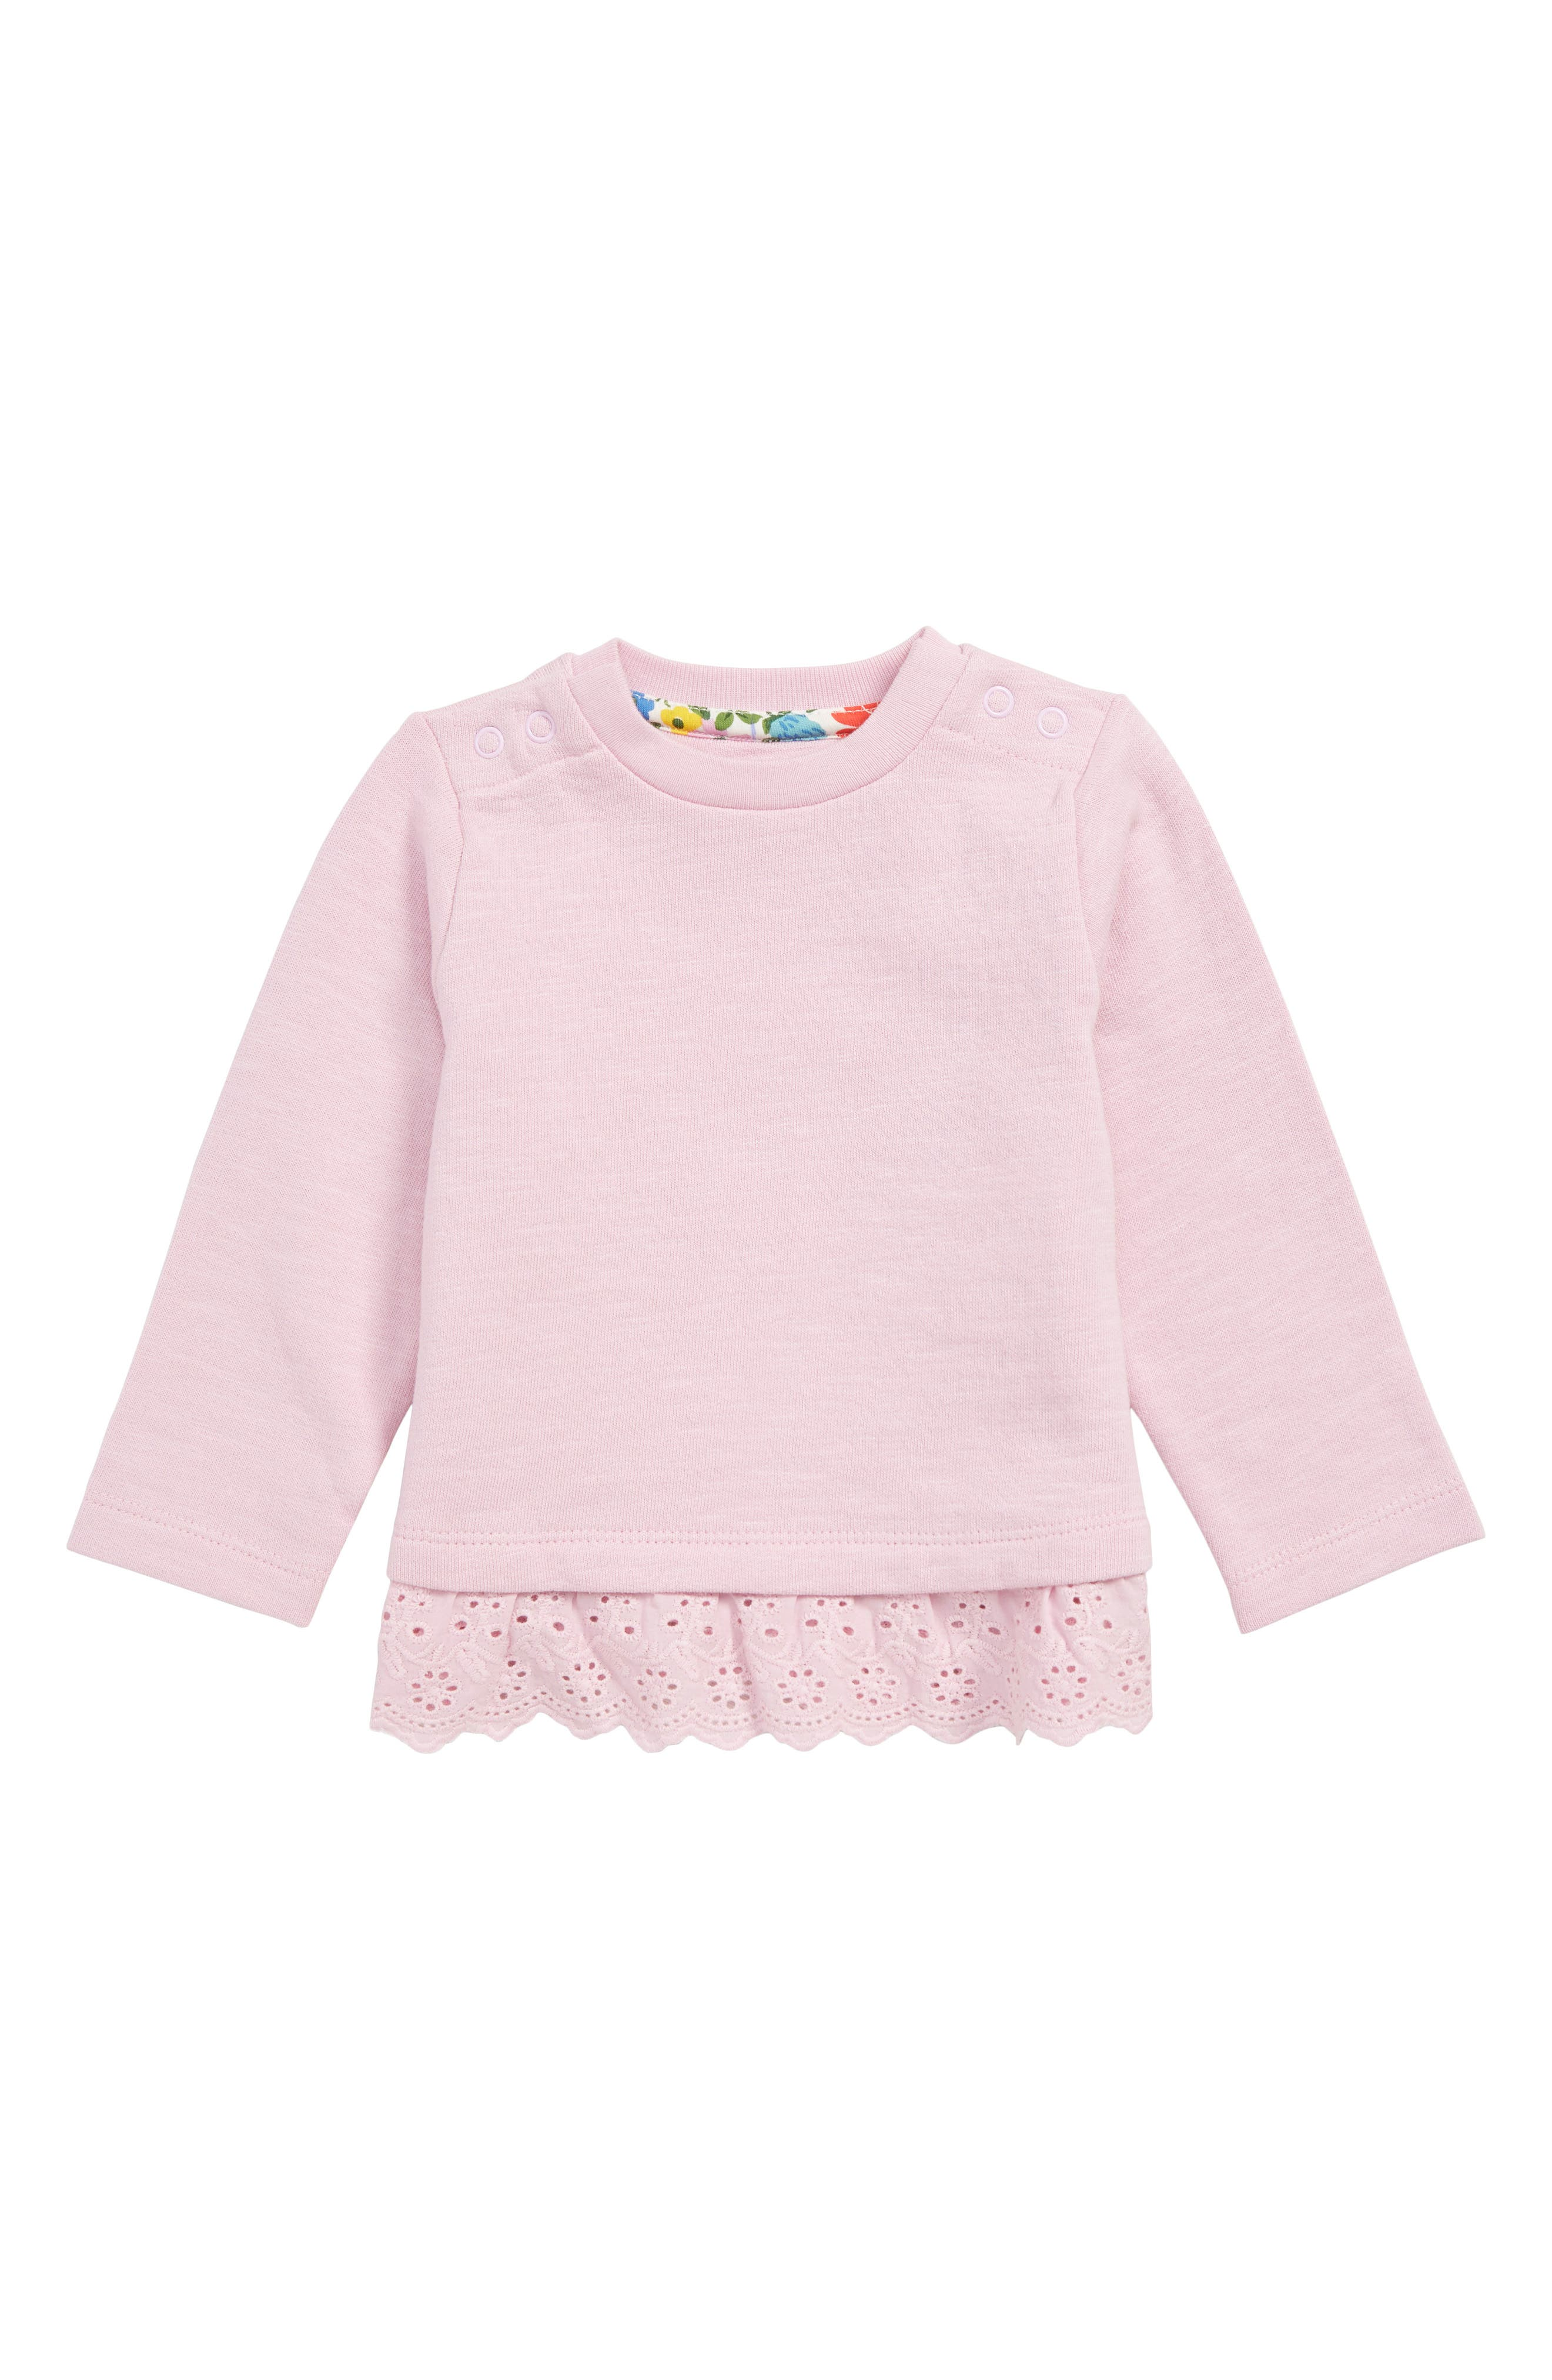 MINI BODEN Frilly Broderie Sweatshirt, Main, color, 664